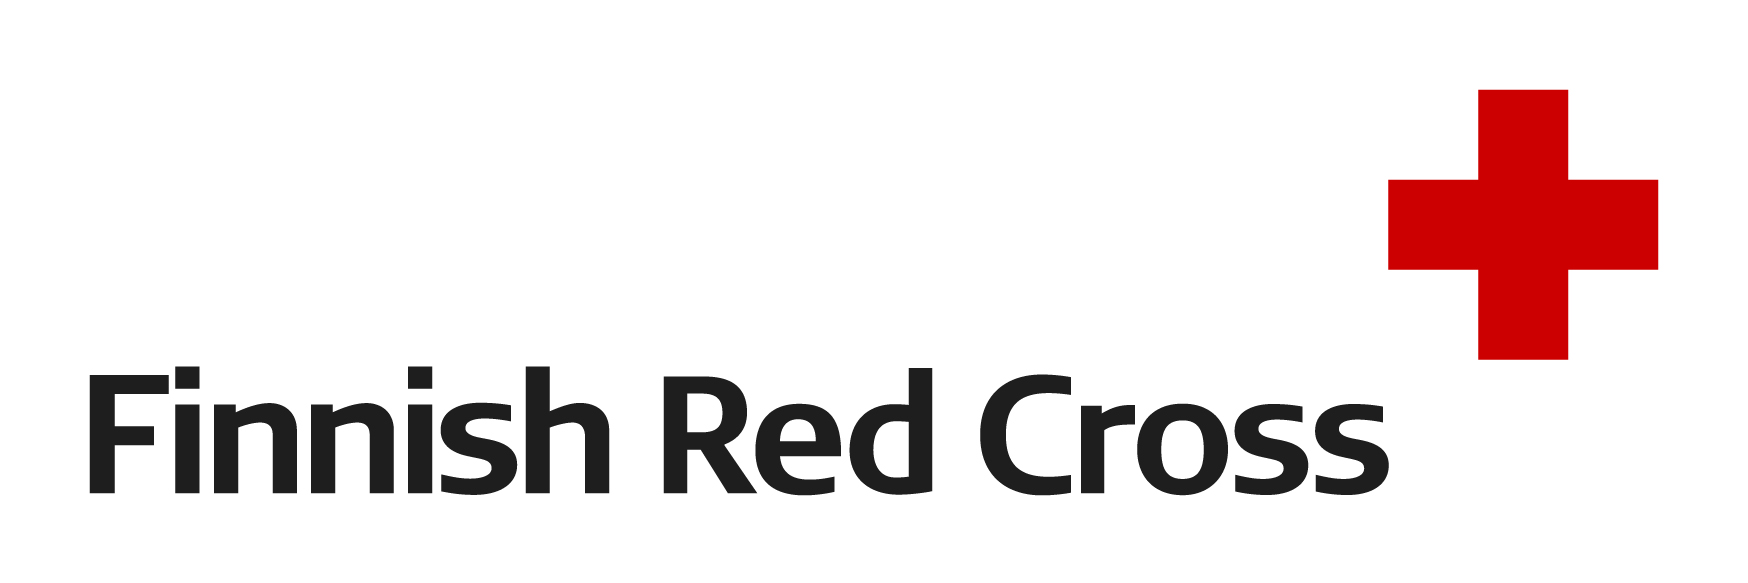 Finnish Red Cross